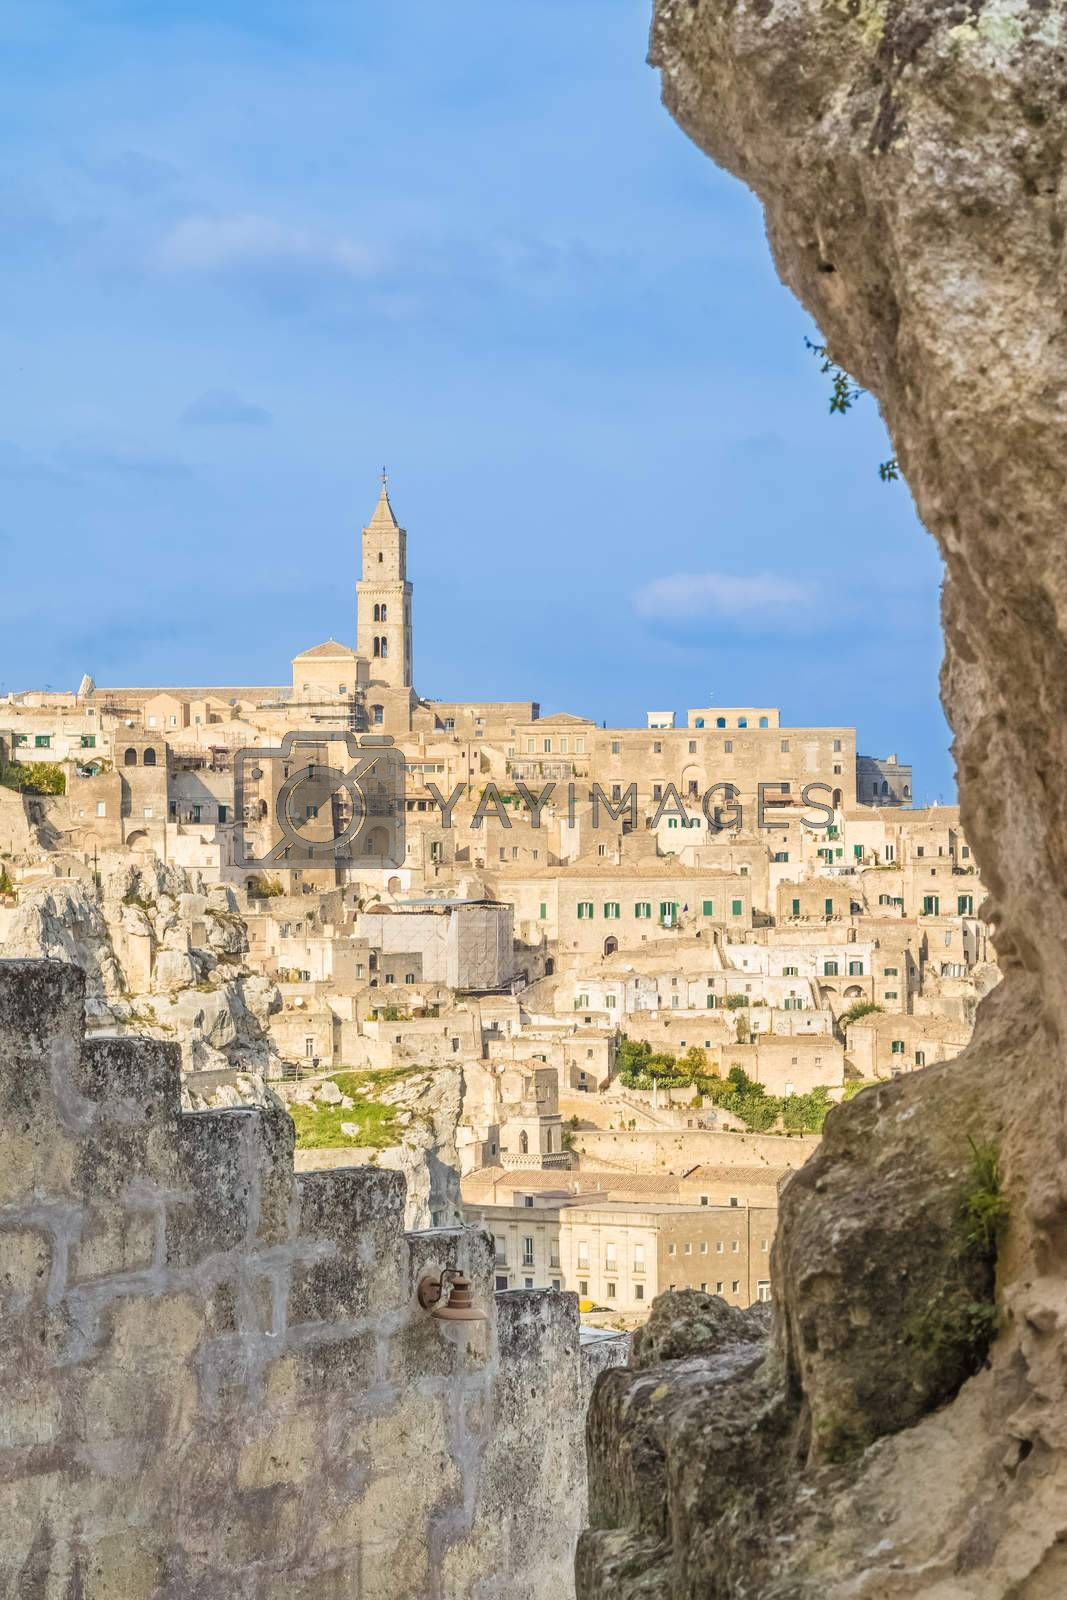 view of typical stones (Sassi di Matera) and church of Matera UNESCO European Capital of Culture 2019 under blue sky. Basilicata, Italy